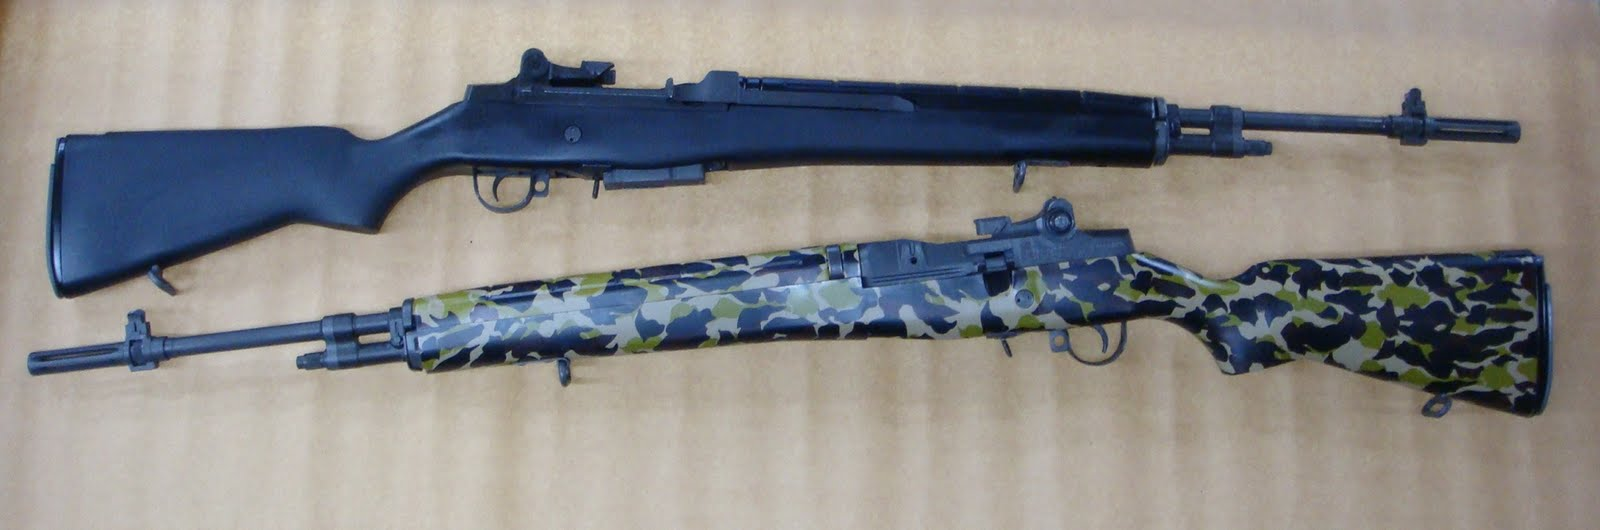 Norinco m14 Wallpapers ~ Asian Defence M14 Wallpaper